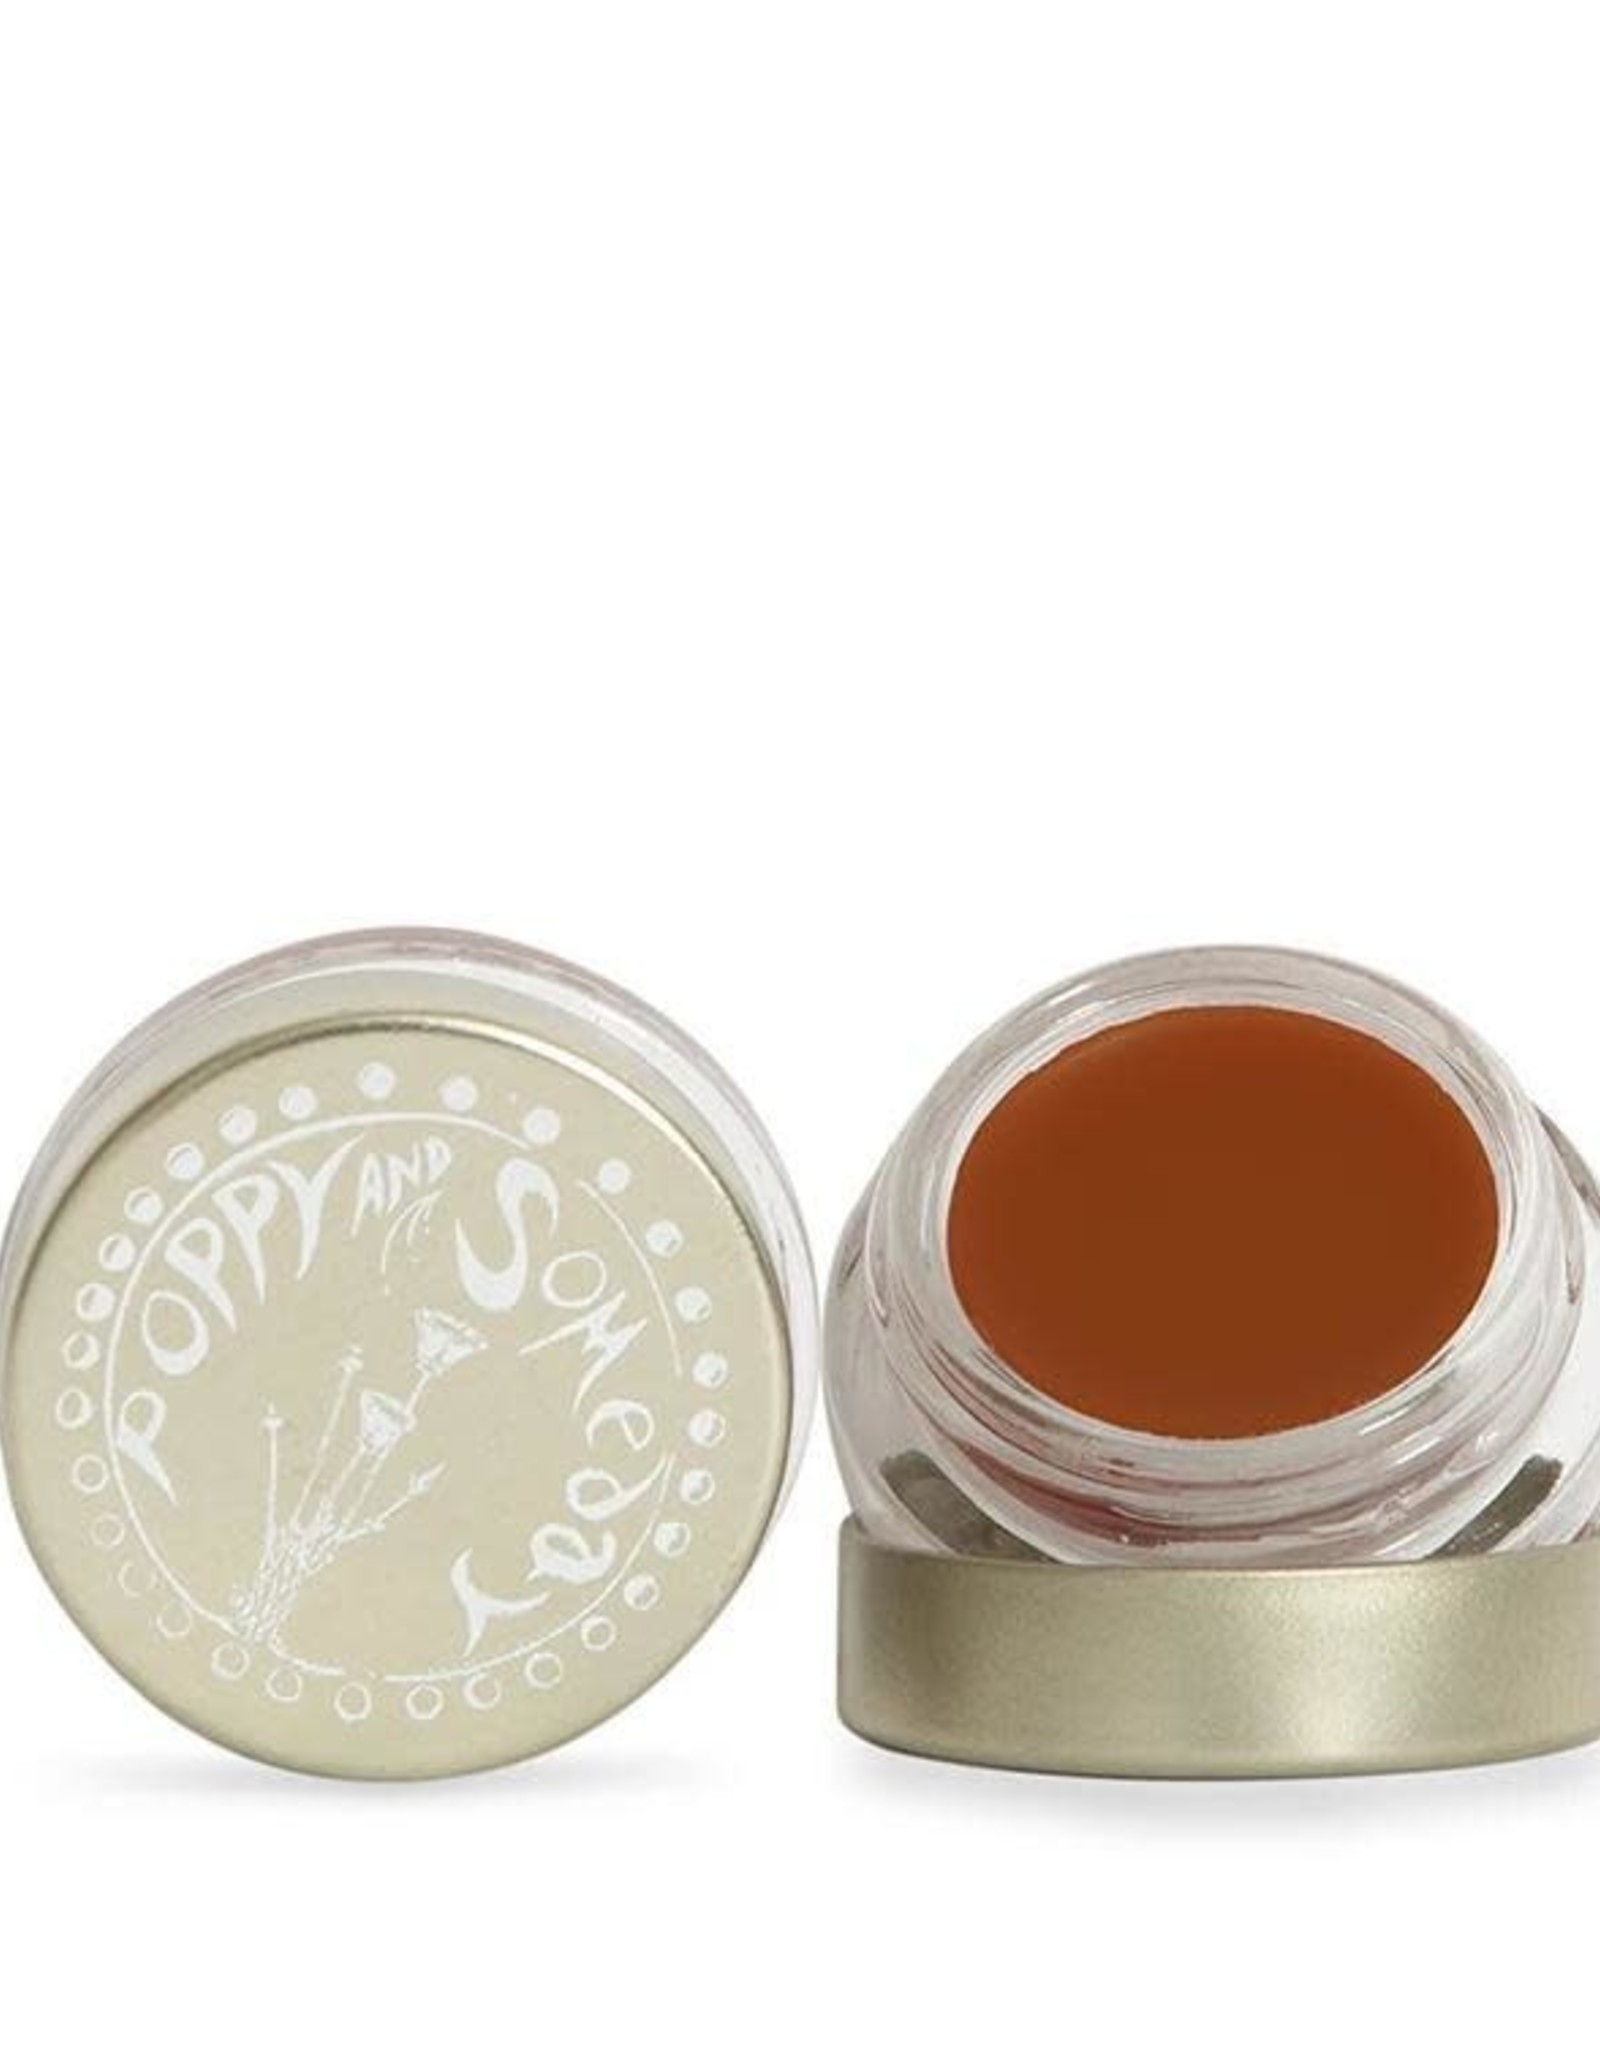 Poppy & Someday Poppy and Someday Canyon Red Lip and Cheek Tint